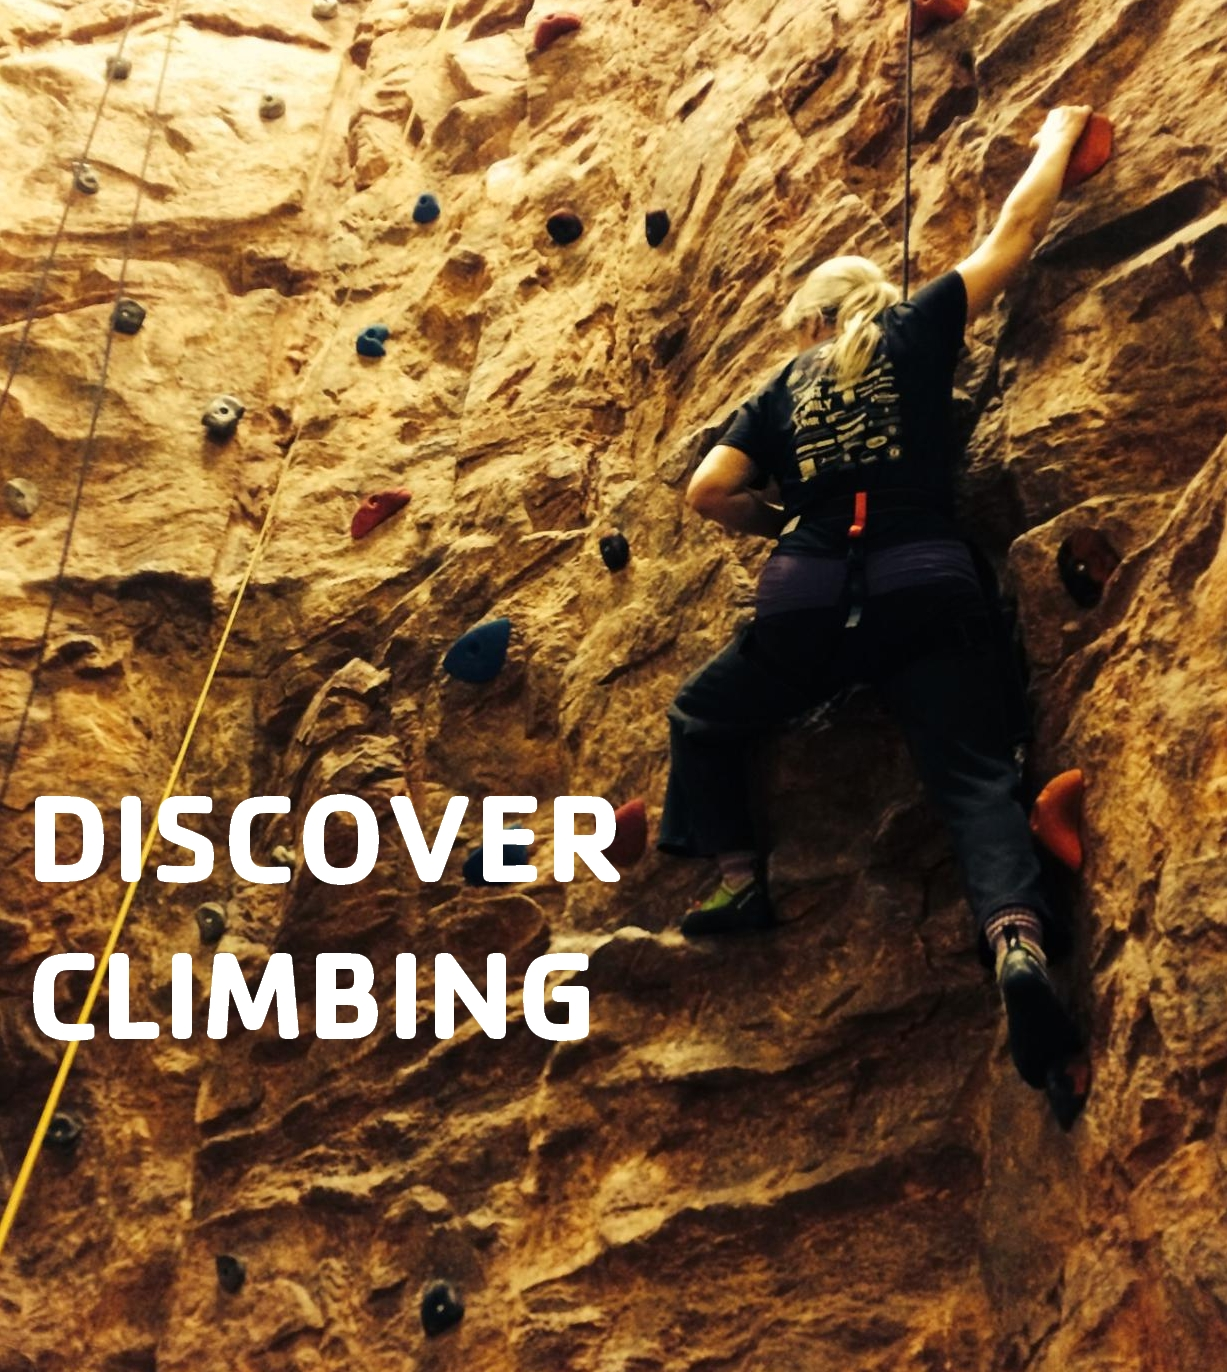 Our team provides indoor and outdoor climbing activities in Montgomery County and the District of Columbia.